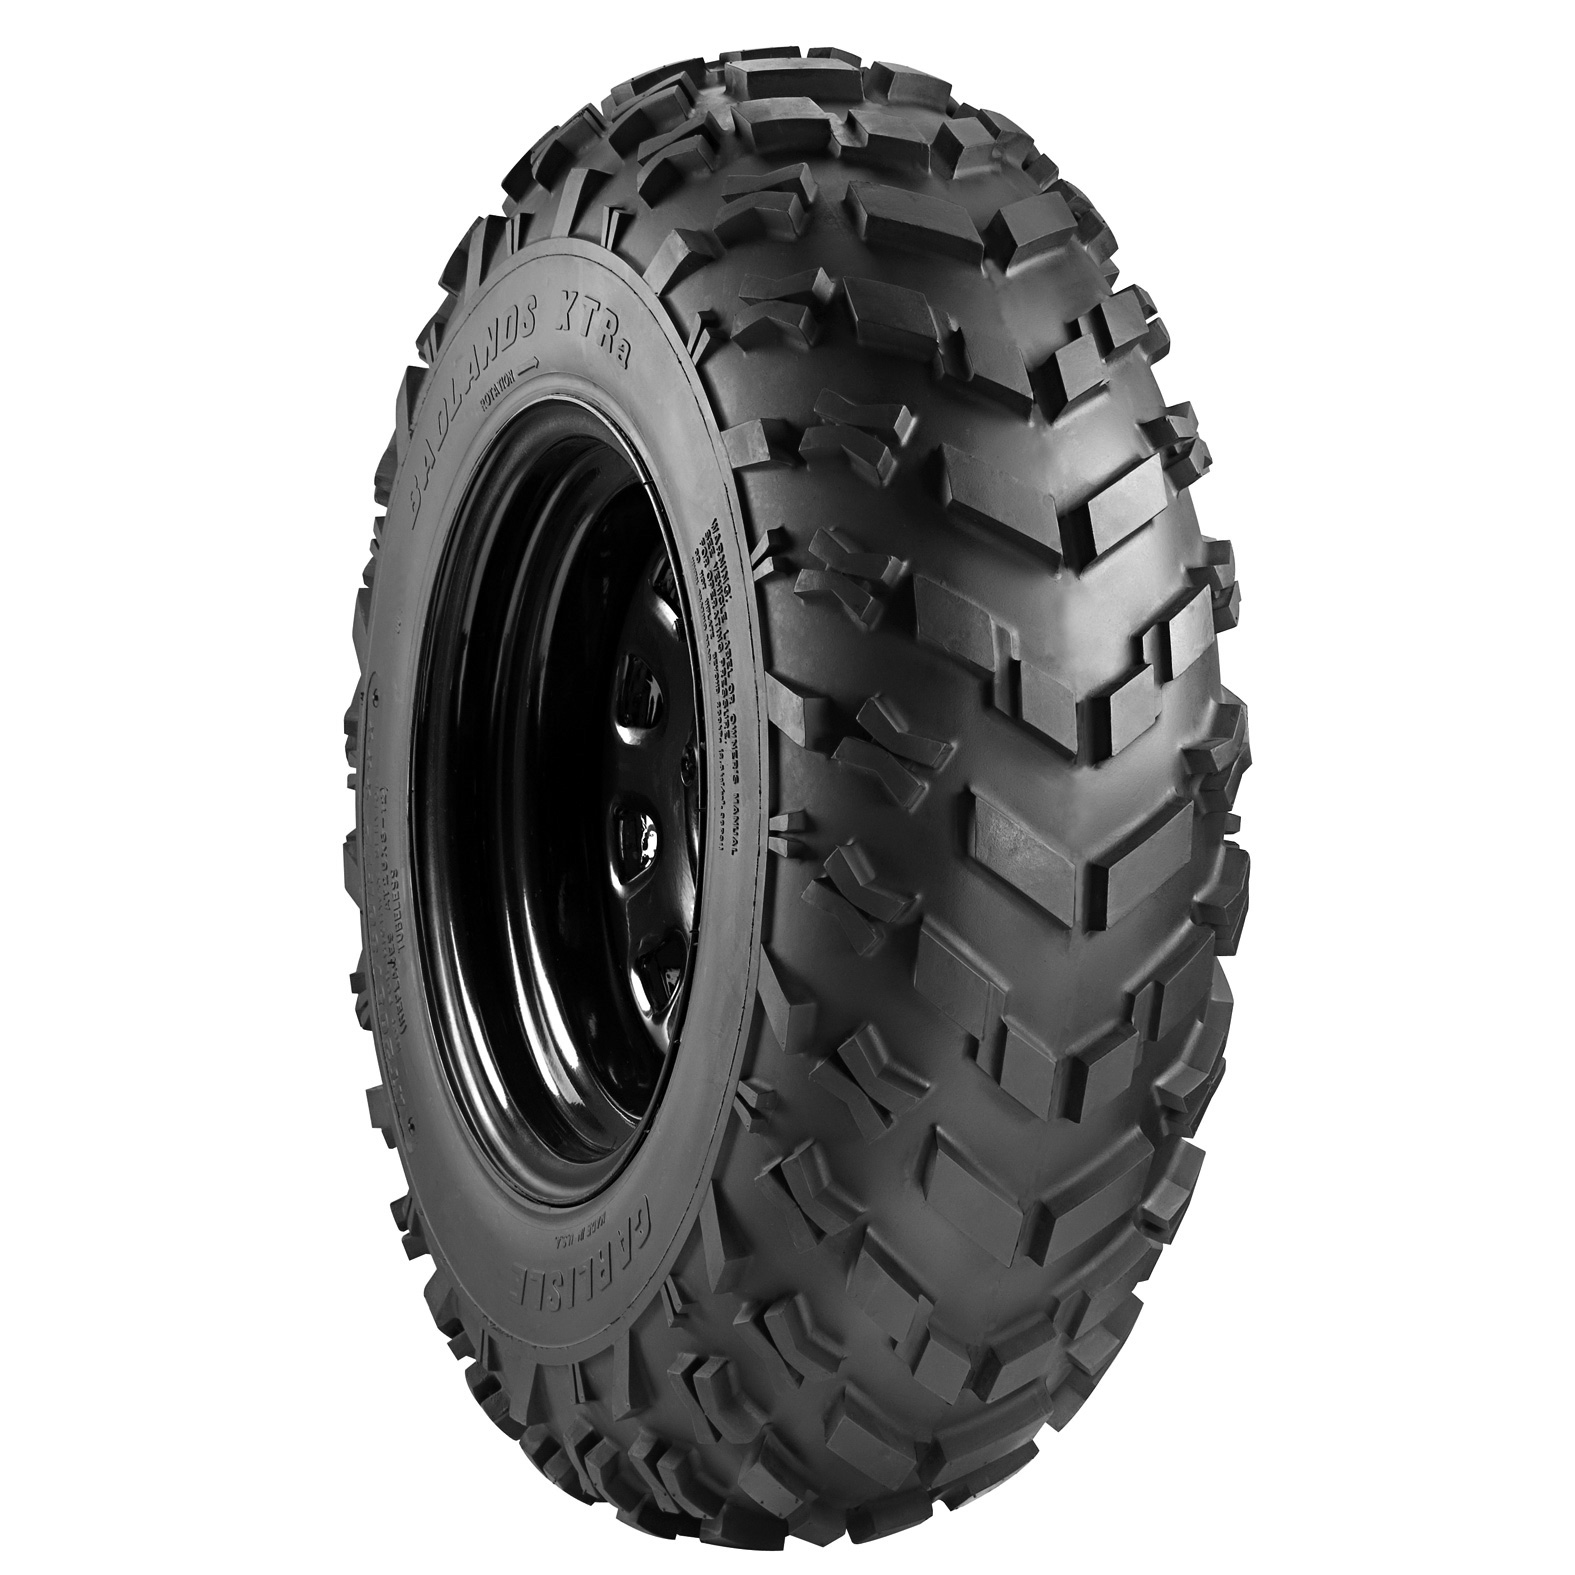 Carlisle Badlands XTR ATV Tire - Angle